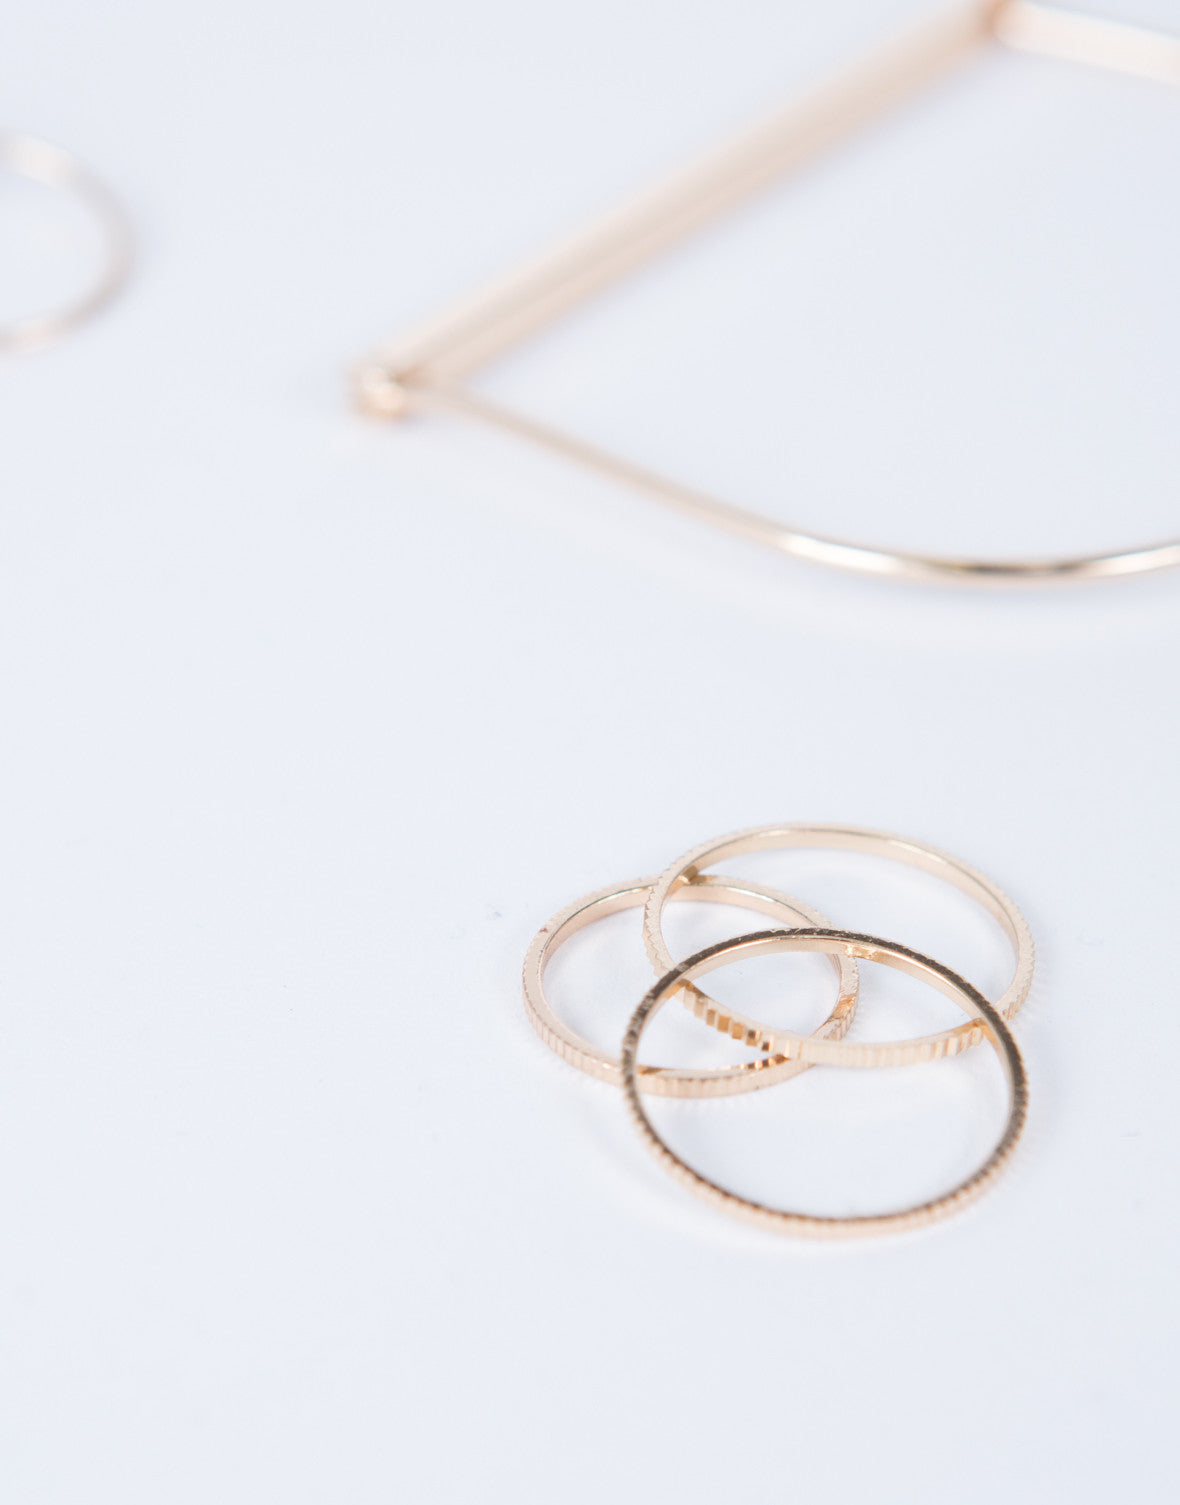 Minimal Bracelet and Ring Set